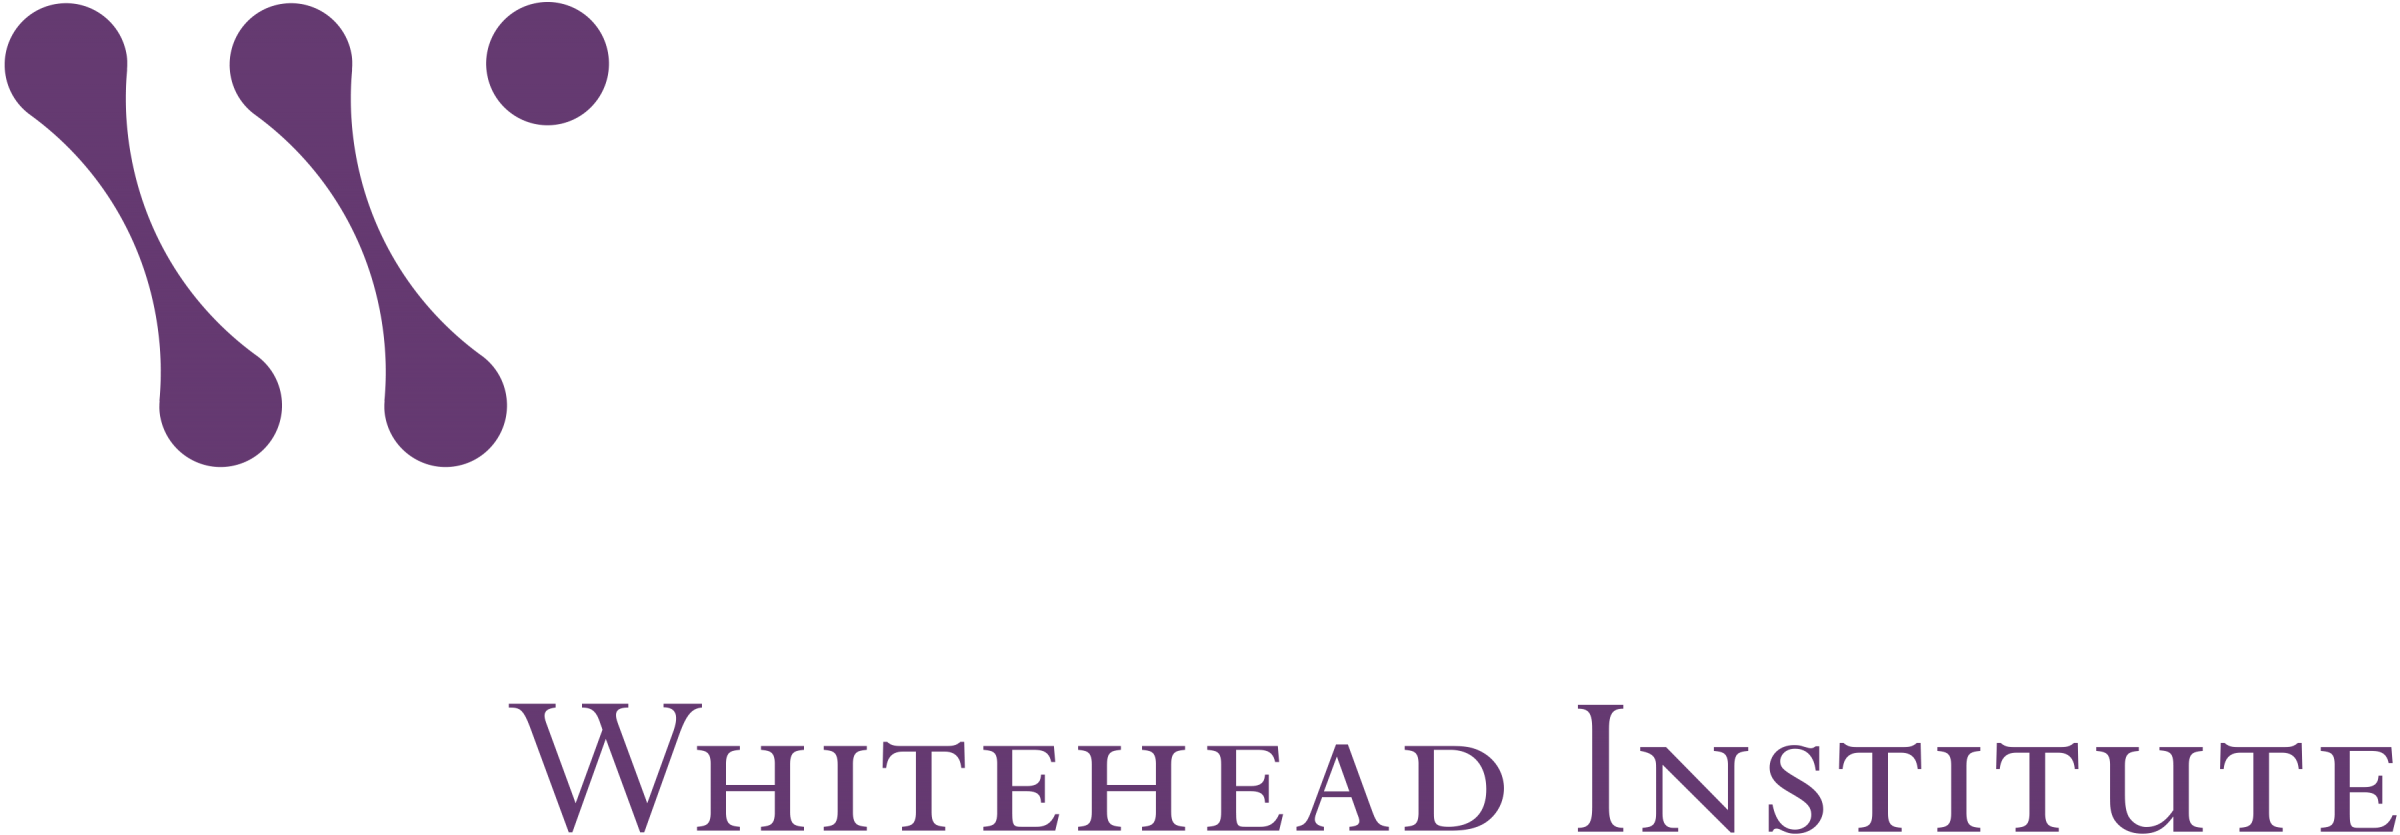 Whitehead Institute for Biomedical Research identifier